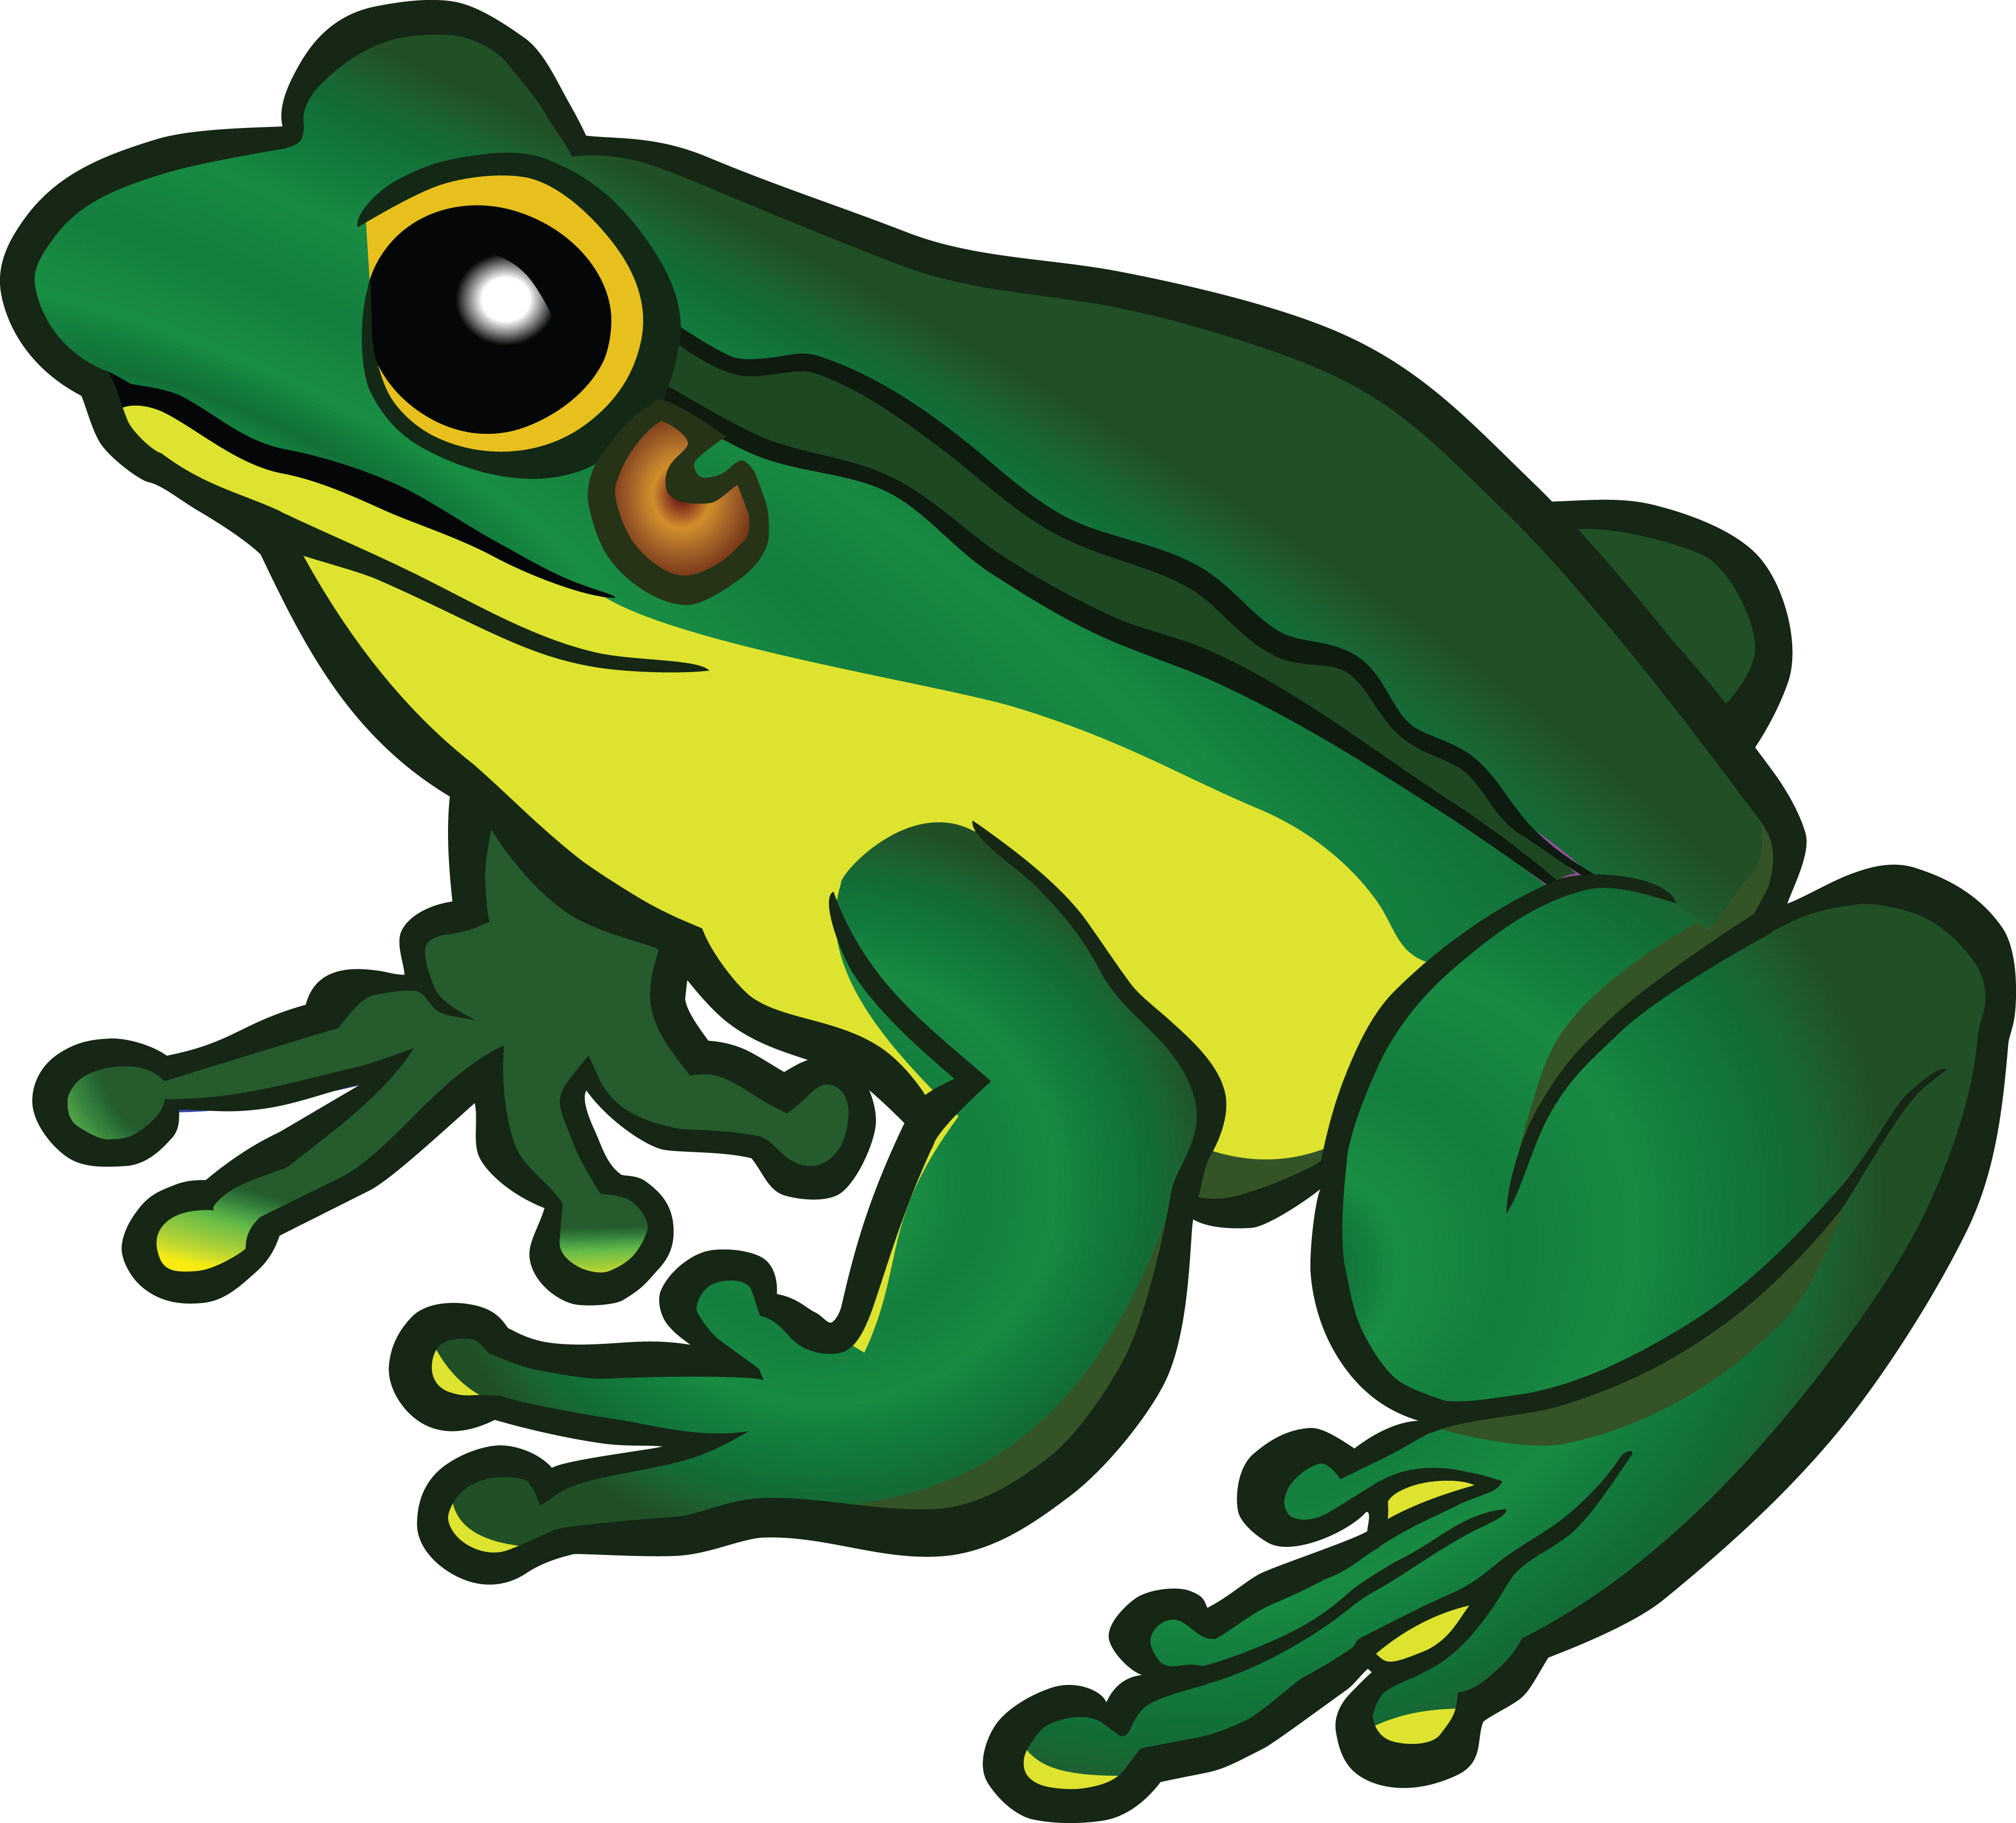 Free clipart frog clip art library library Frog Images Free | Free download best Frog Images Free on ClipArtMag.com clip art library library